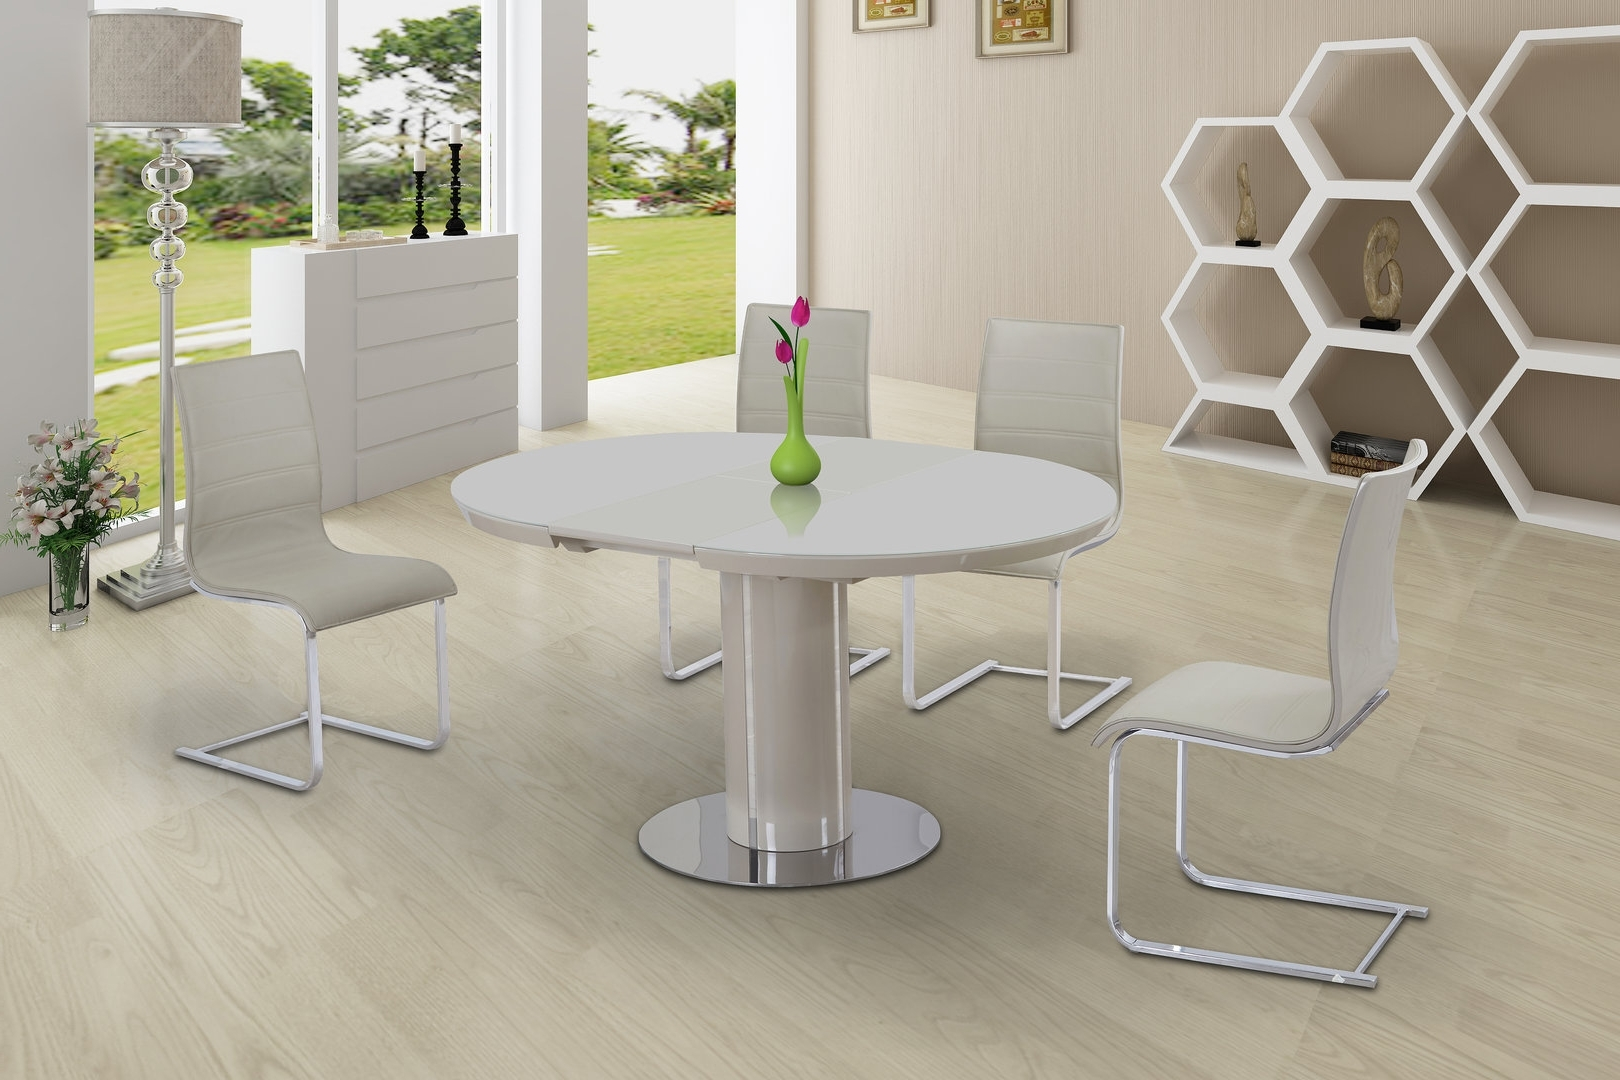 High Gloss Dining Tables Intended For Most Popular Round Cream Glass High Gloss Dining Table & 4 Chairs – Homegenies (Gallery 7 of 25)